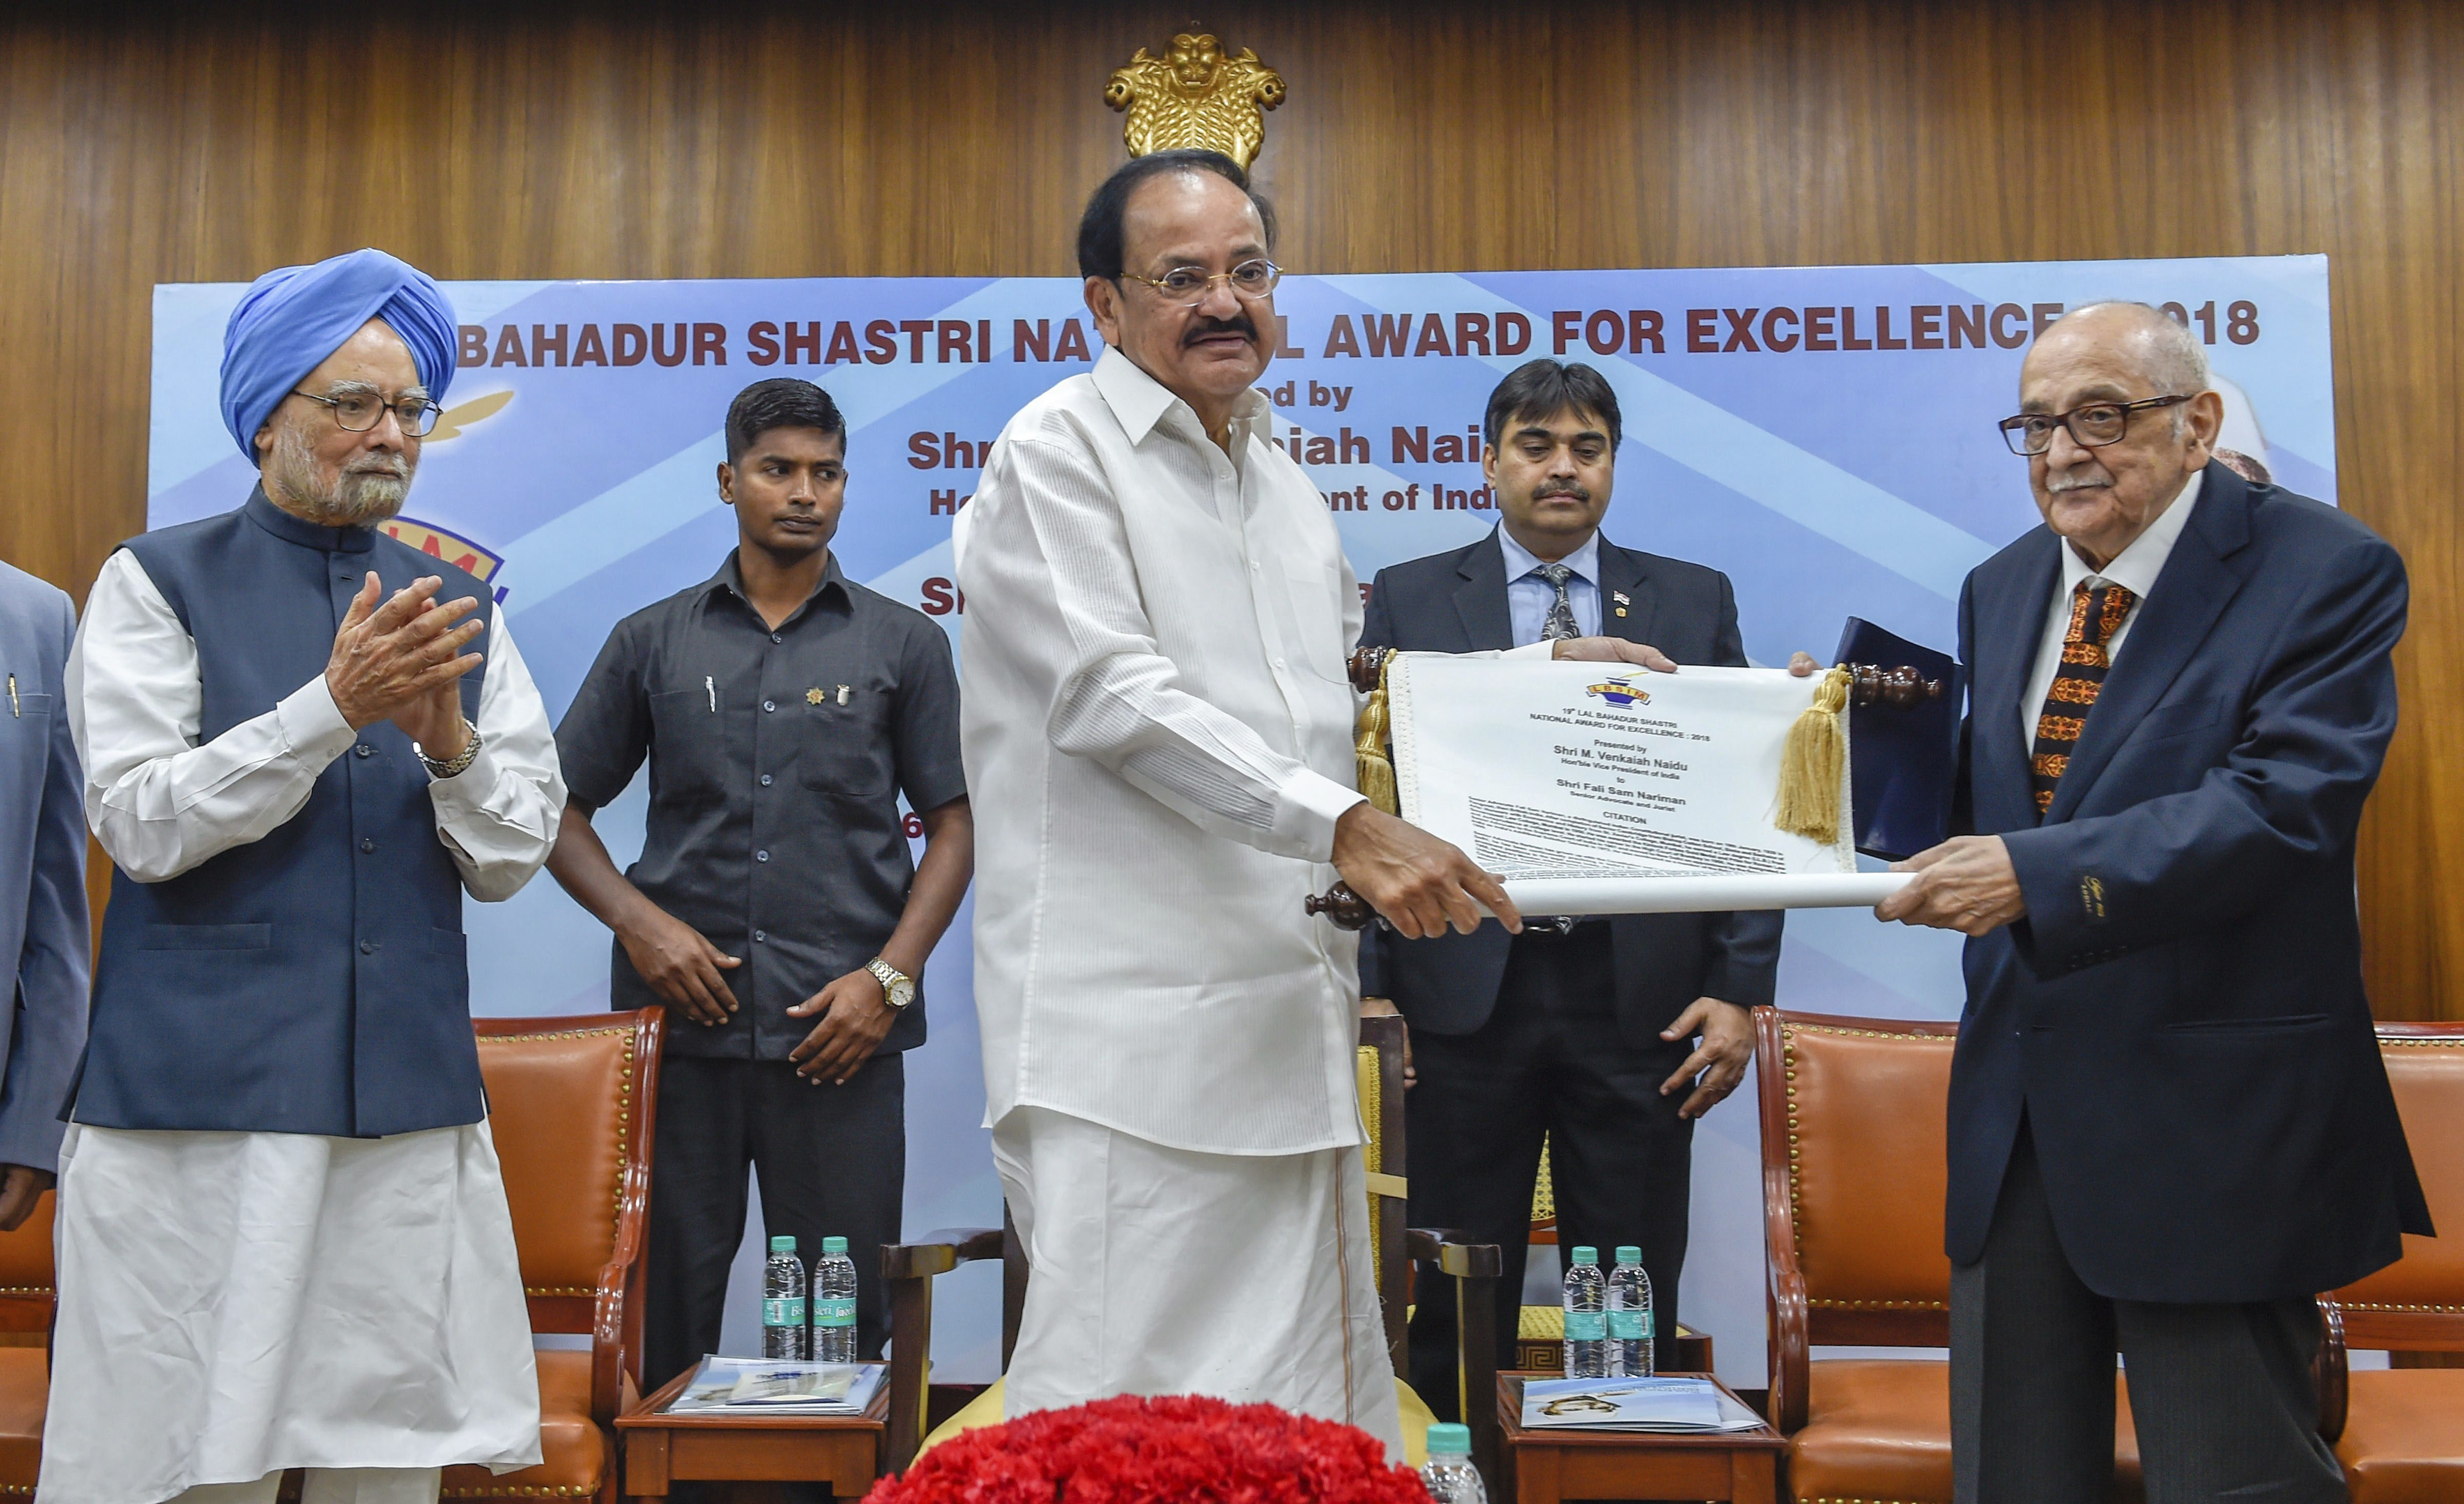 Vice President M Venkaiah Naidu presents 19th Lal Bahadur Shastri National Awards for Excellence 2018 to veteran jurist Fali S. Nariman as former prime minister Manmohan Singh looks on, during a ceremony in New Delhi - PTI